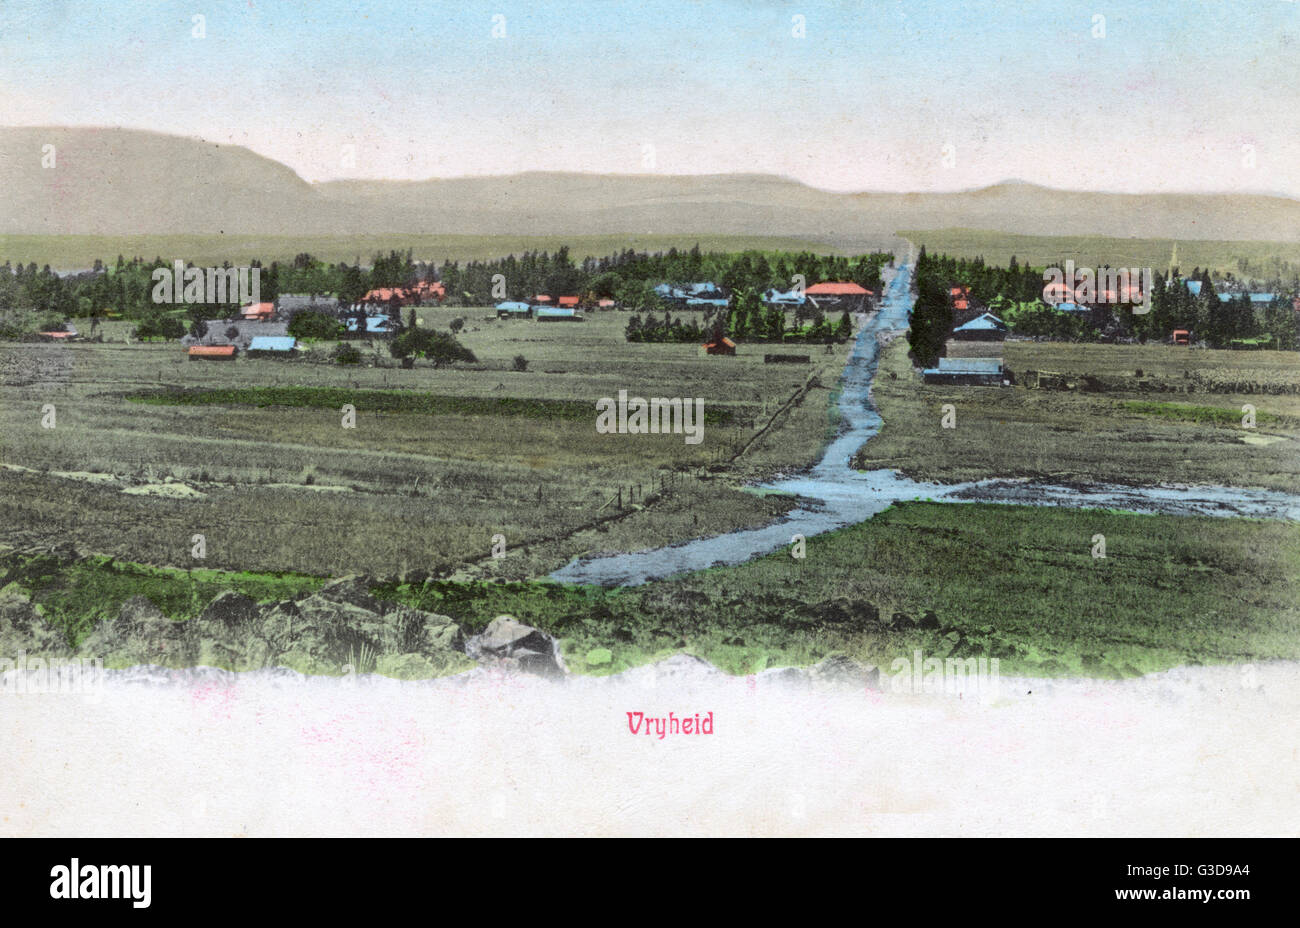 dating Vryheid